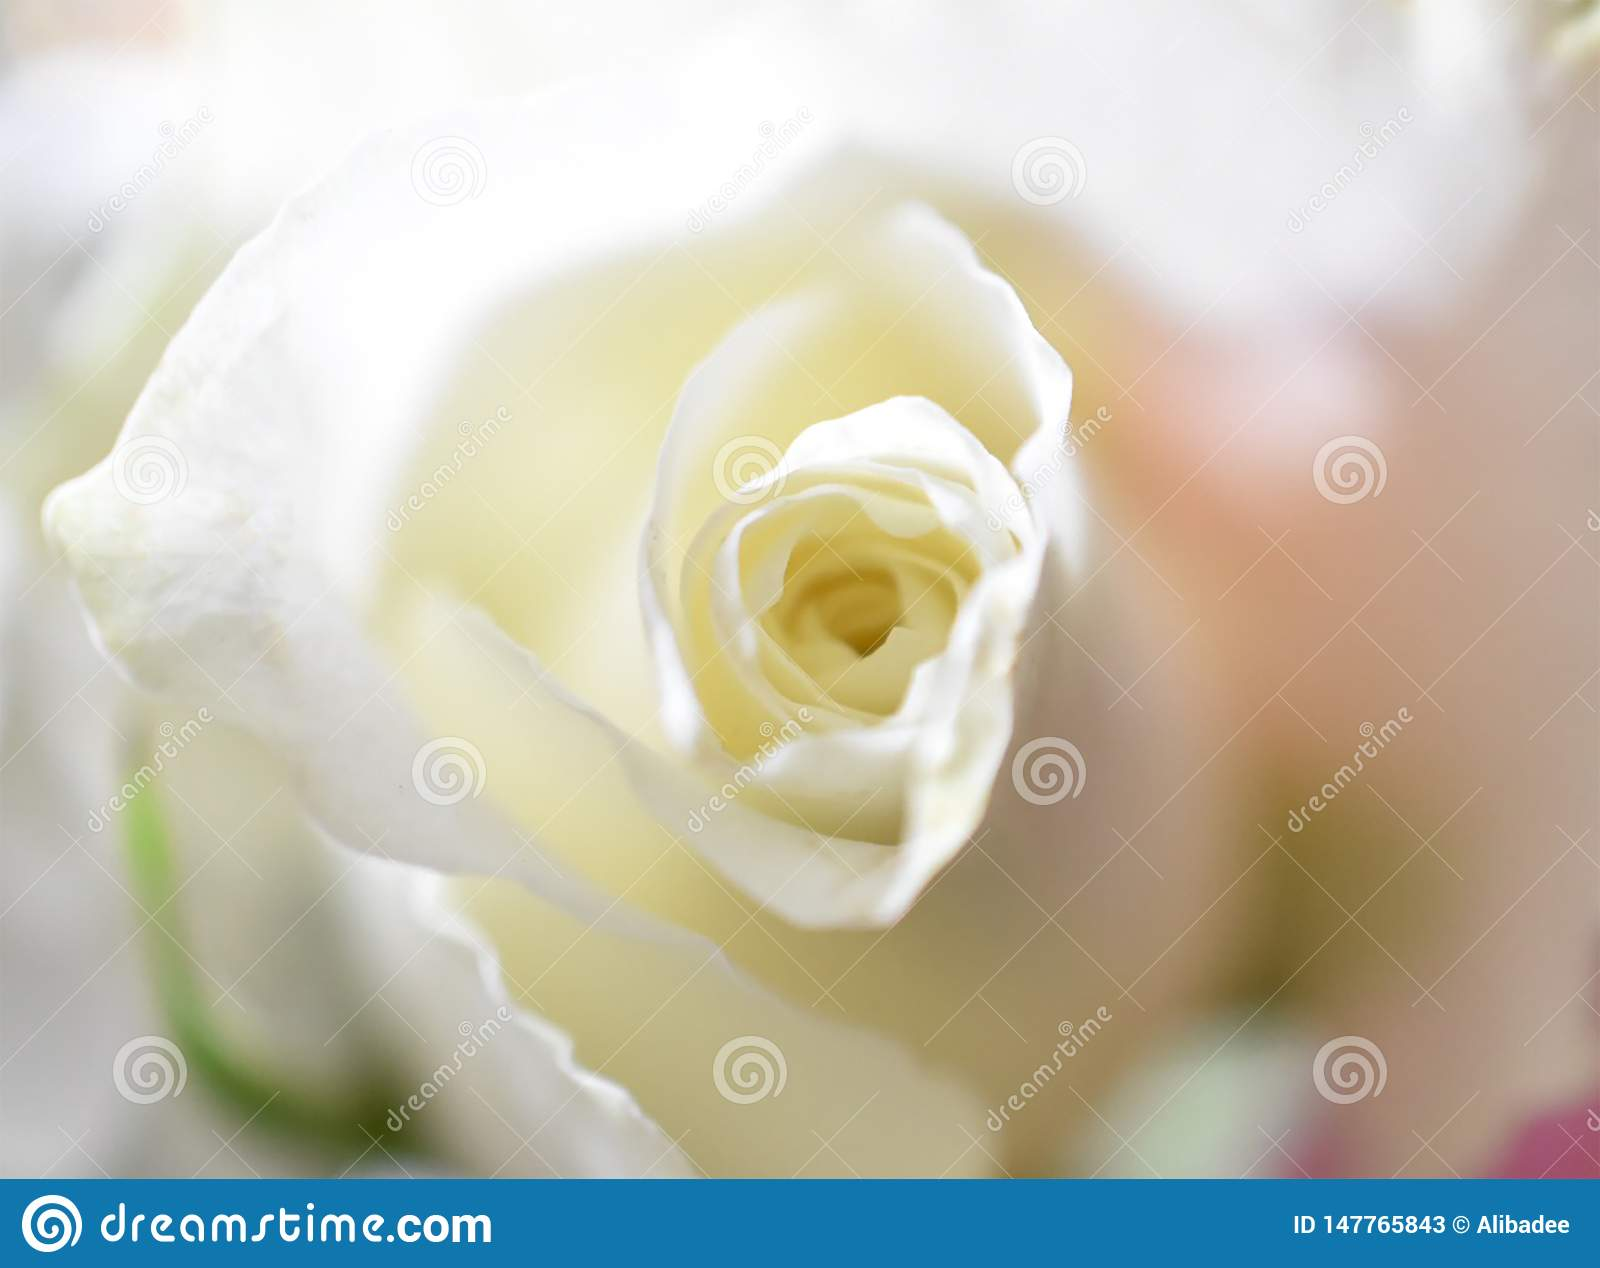 Purity of the rose